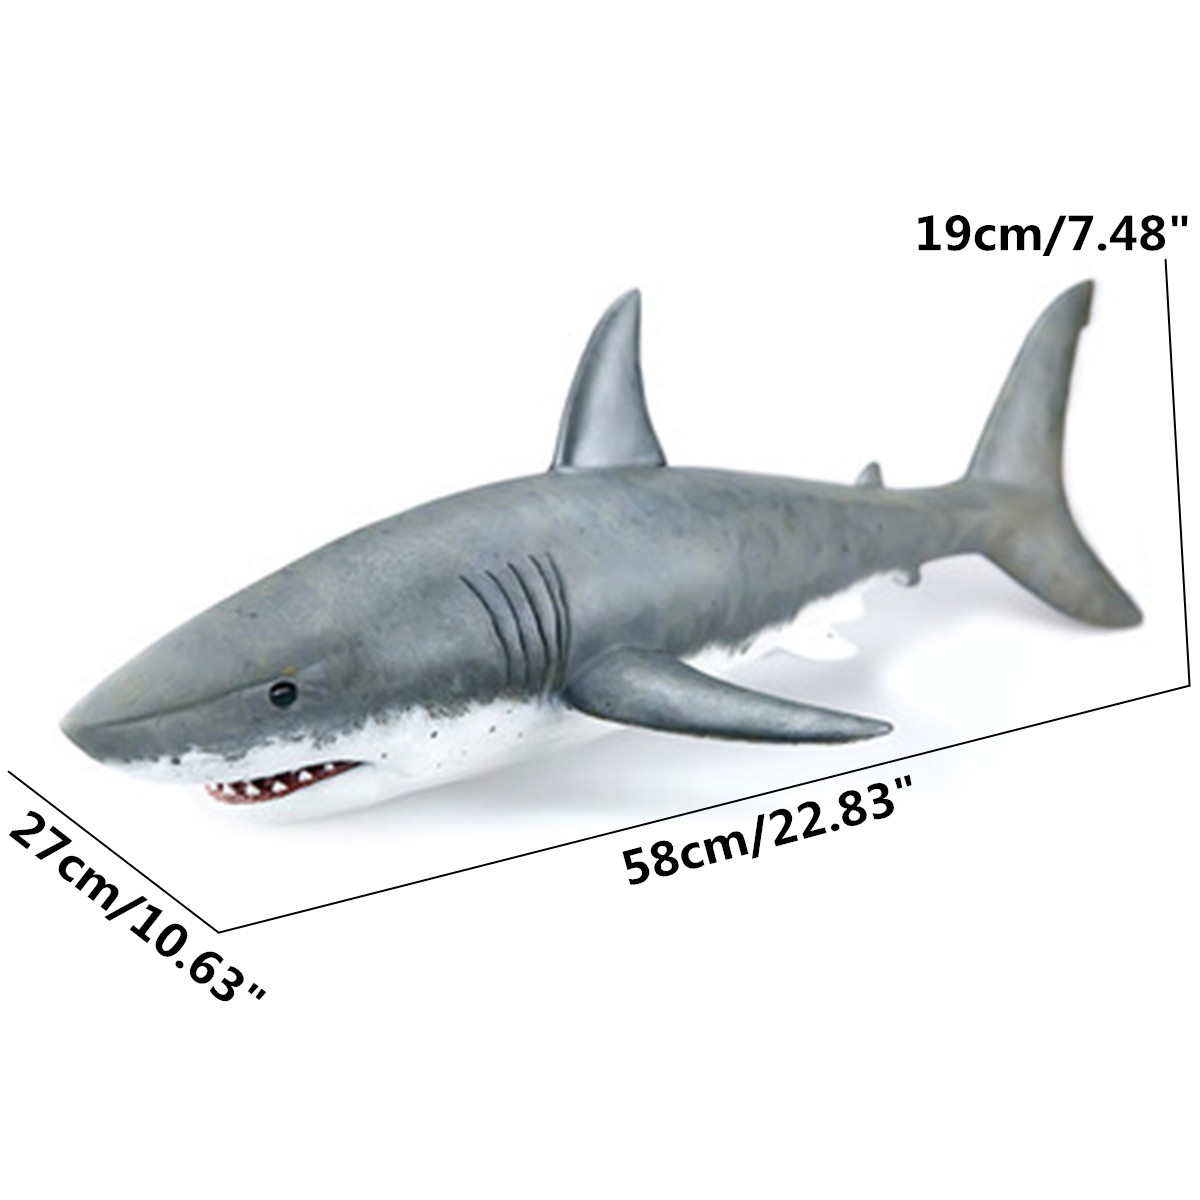 1:12 Scale Great 58cm White Shark Toy Action Figure Child Emulation Shark Model Toys Ocean Animal Model For Kids Learning Gifts hot toys great white shark simulation model marine animals sea animal kids gift educational props carcharodon carcharias jaws